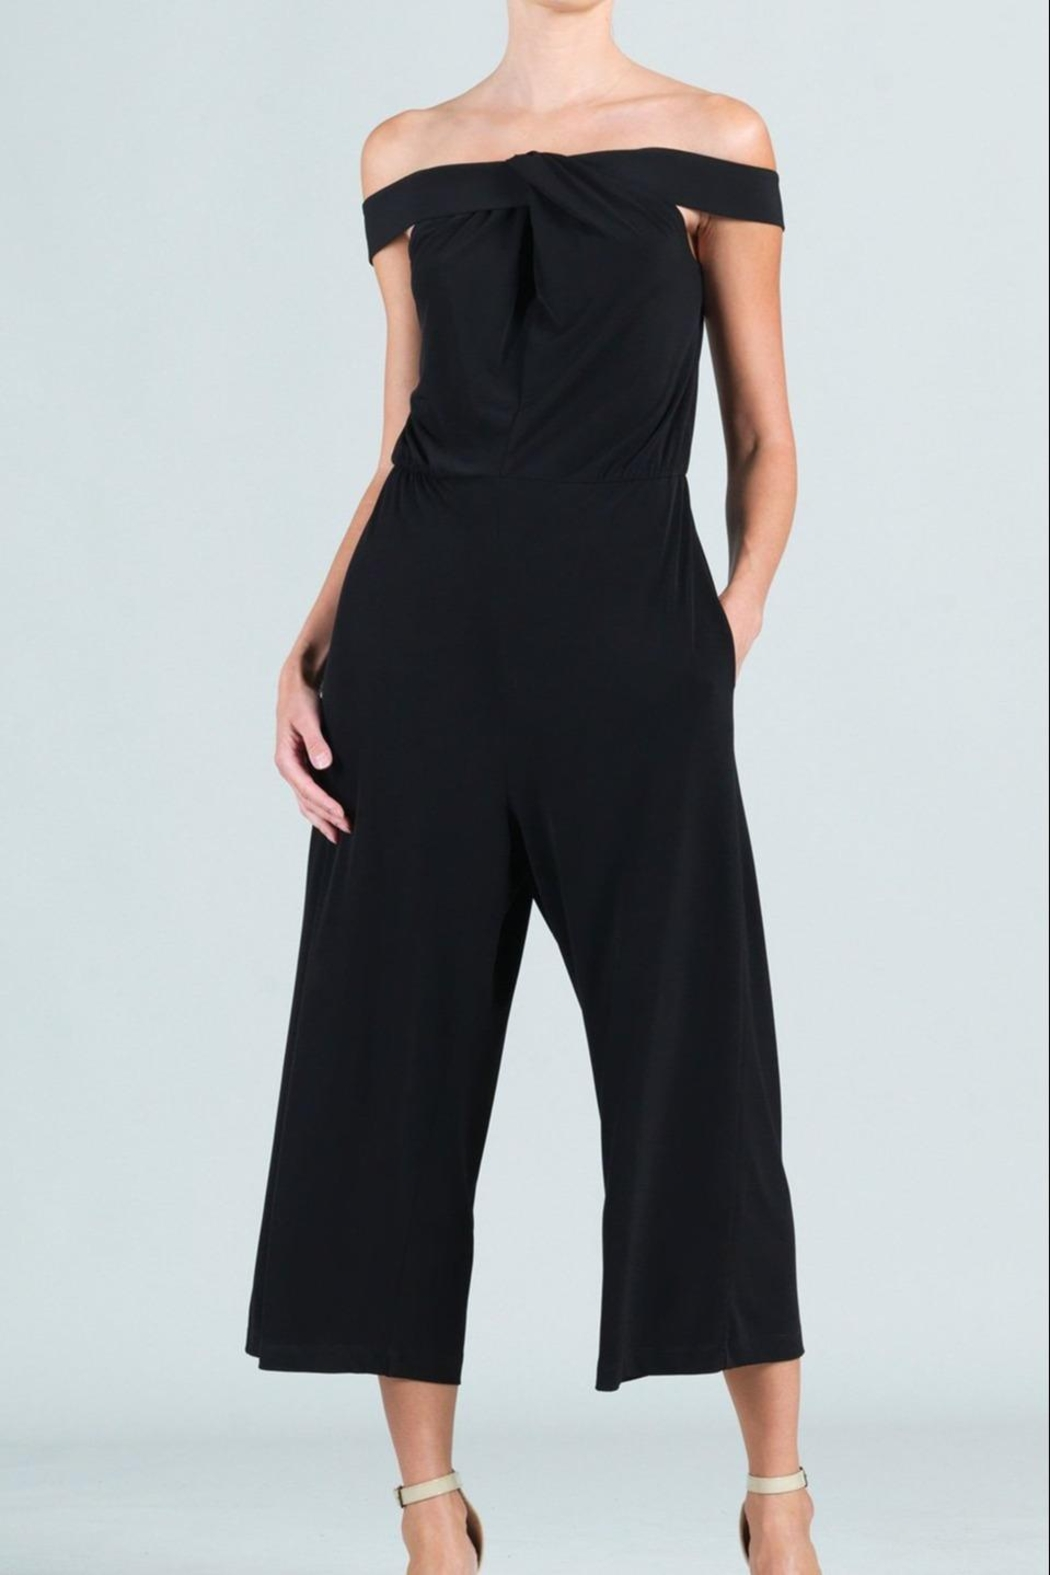 Clara Sunwoo Cross-Front Cropped-Halter Jumpsuit - Front Full Image